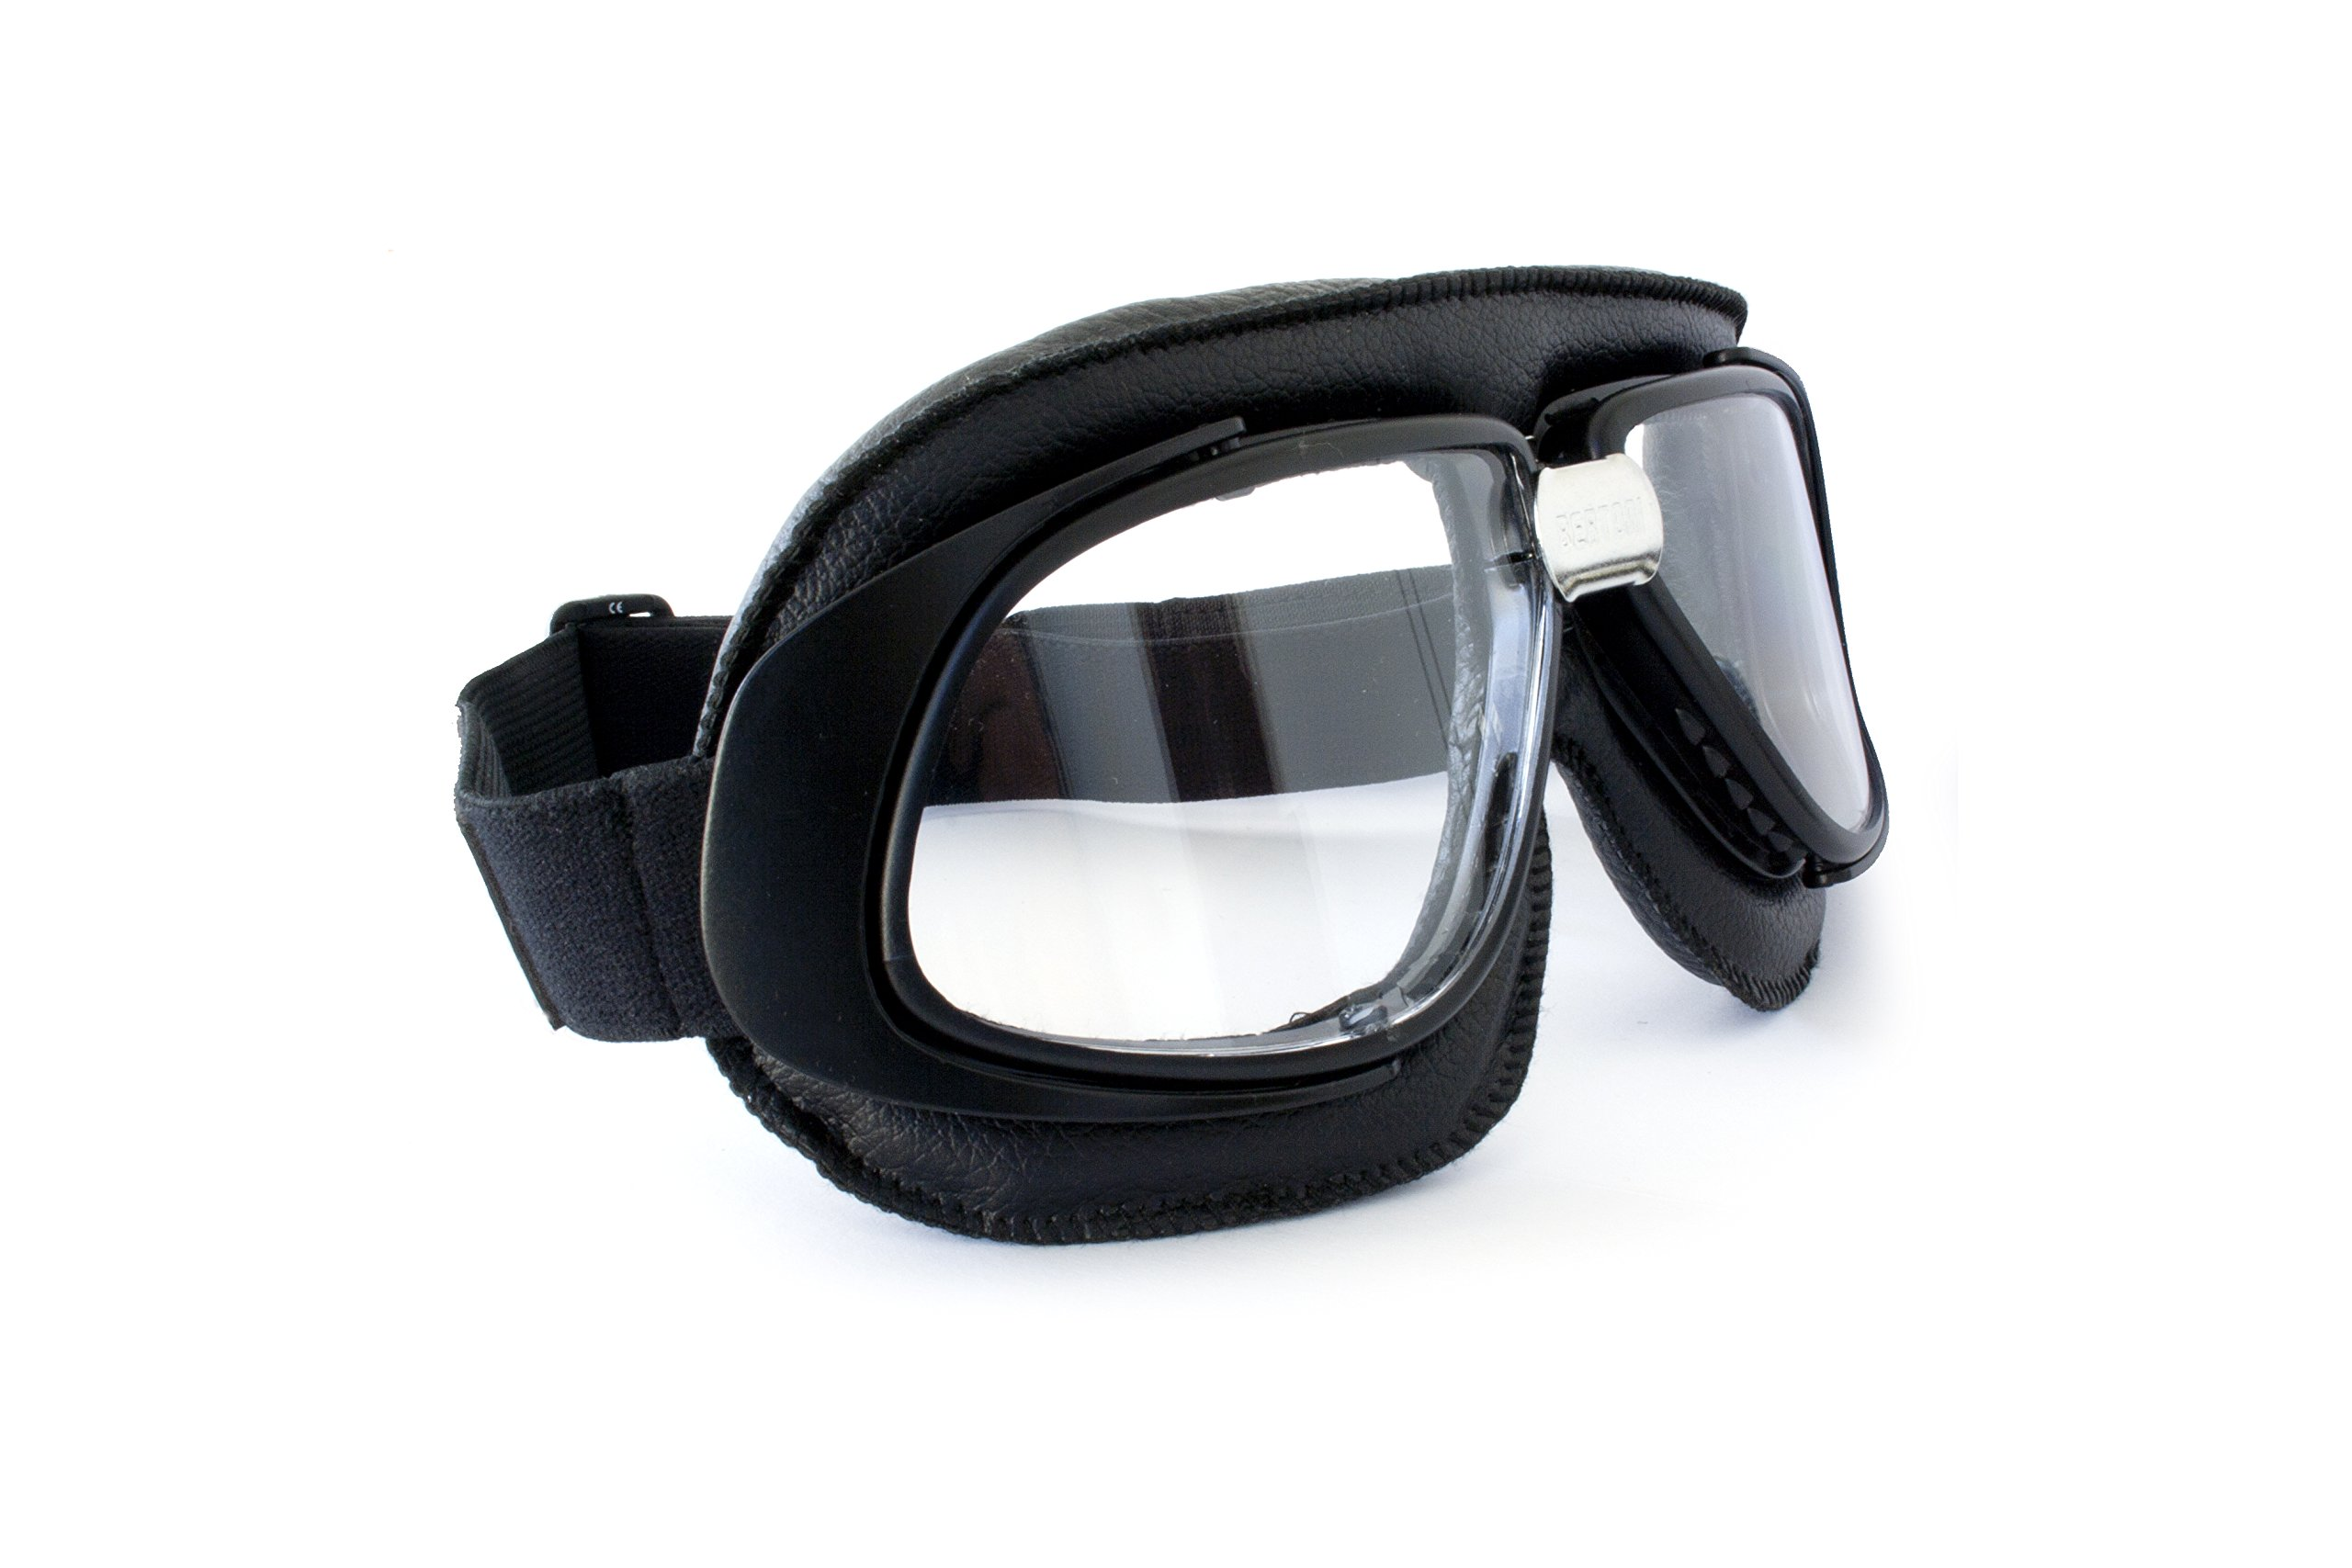 435e423b34a9 Vintage Motorcycle Goggles Black Leather with Antifog and Anticrash Lenses  by Bertoni Italy - AF190A Motorbike